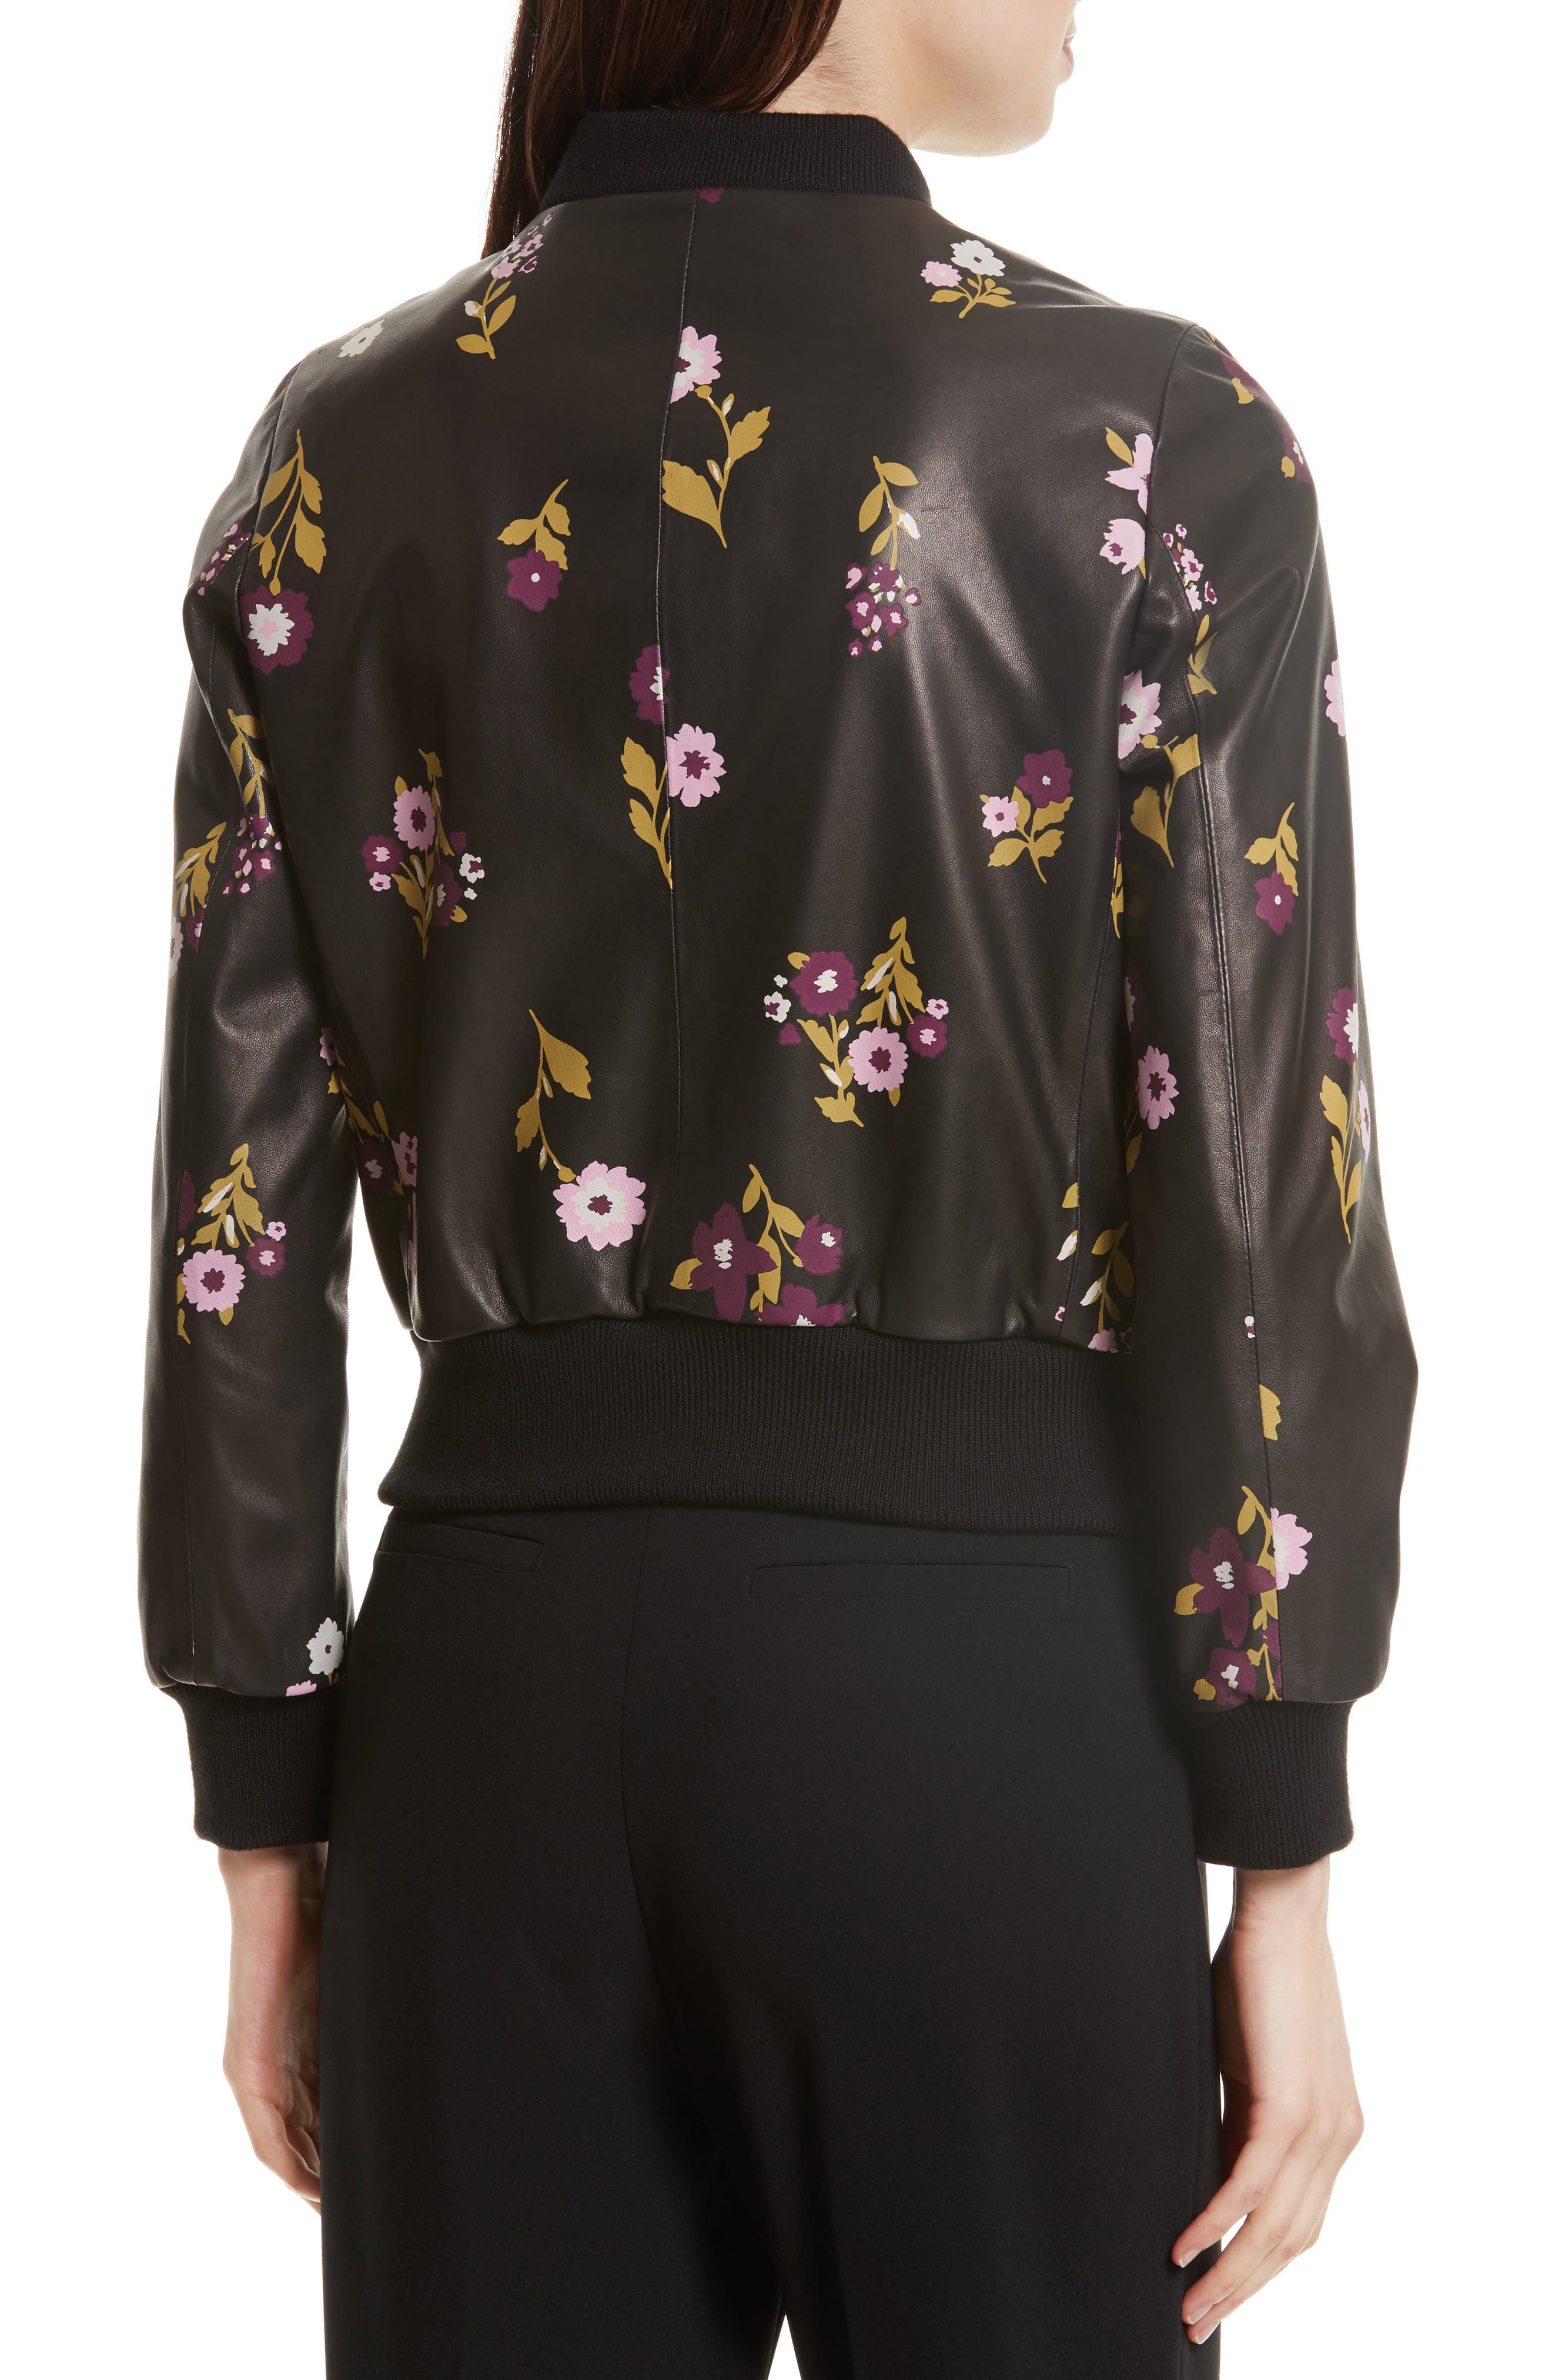 in bloom leather bomber jacket,                             Alternate thumbnail 2, color,                             006